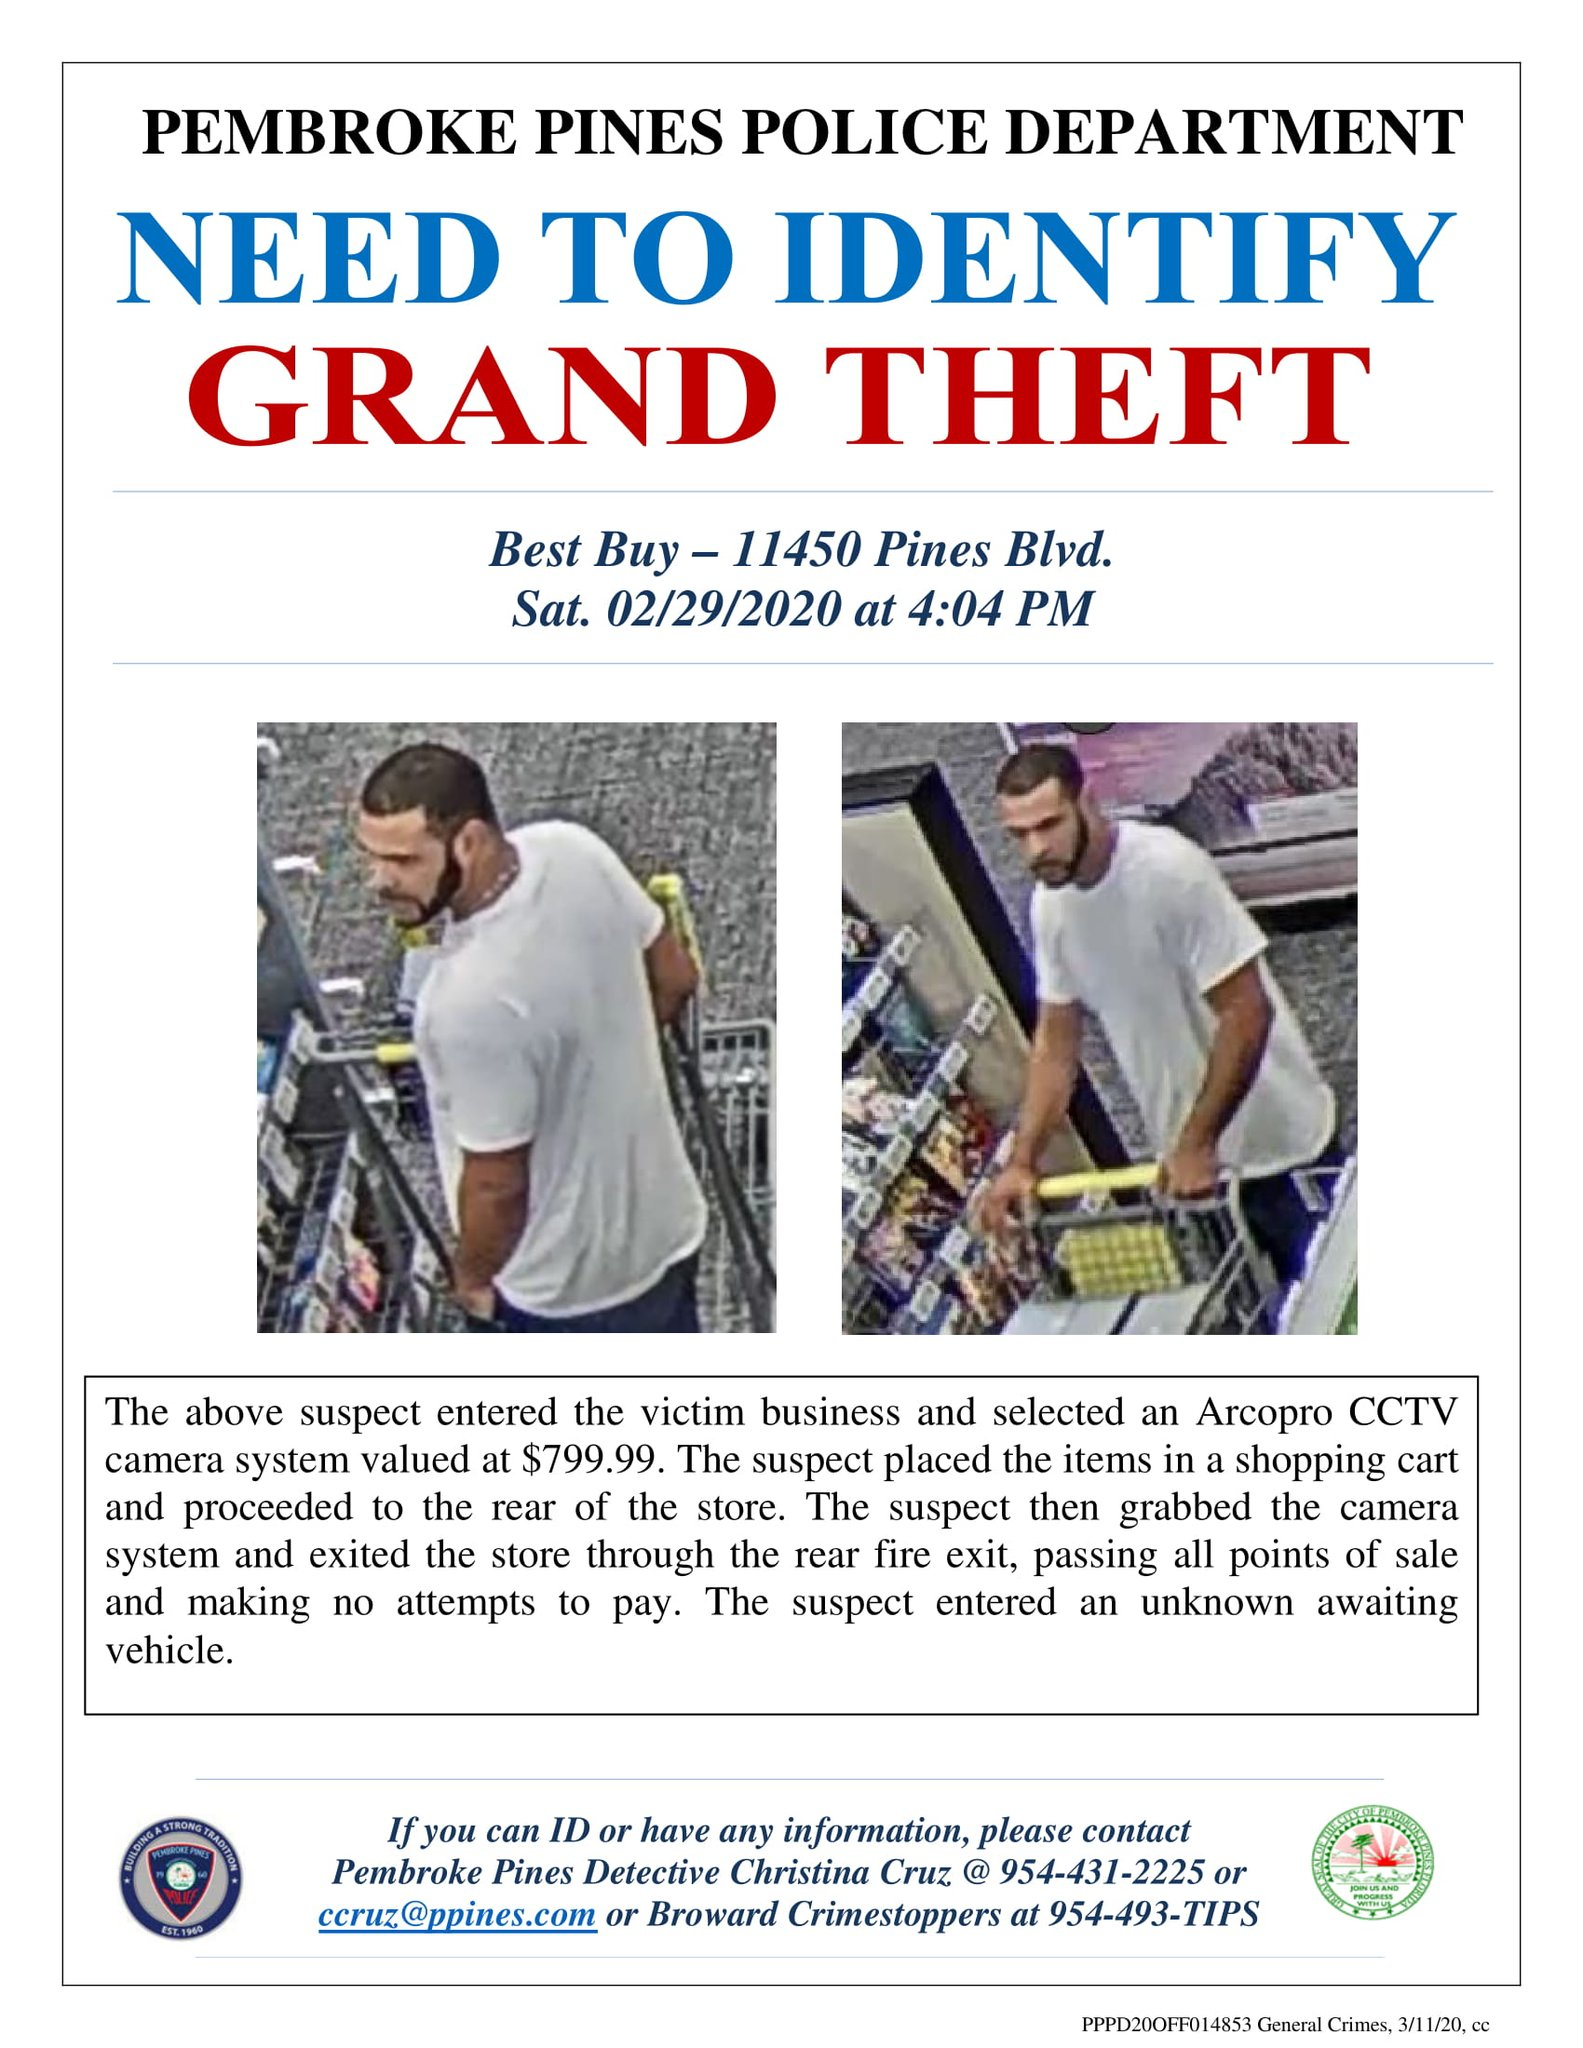 pembroke pines pd on twitter can you identify this unknown suspect who stole over 799 worth of items from best buy 11450 pines blvd the suspect is described as a white hispanic pembroke pines pd on twitter can you